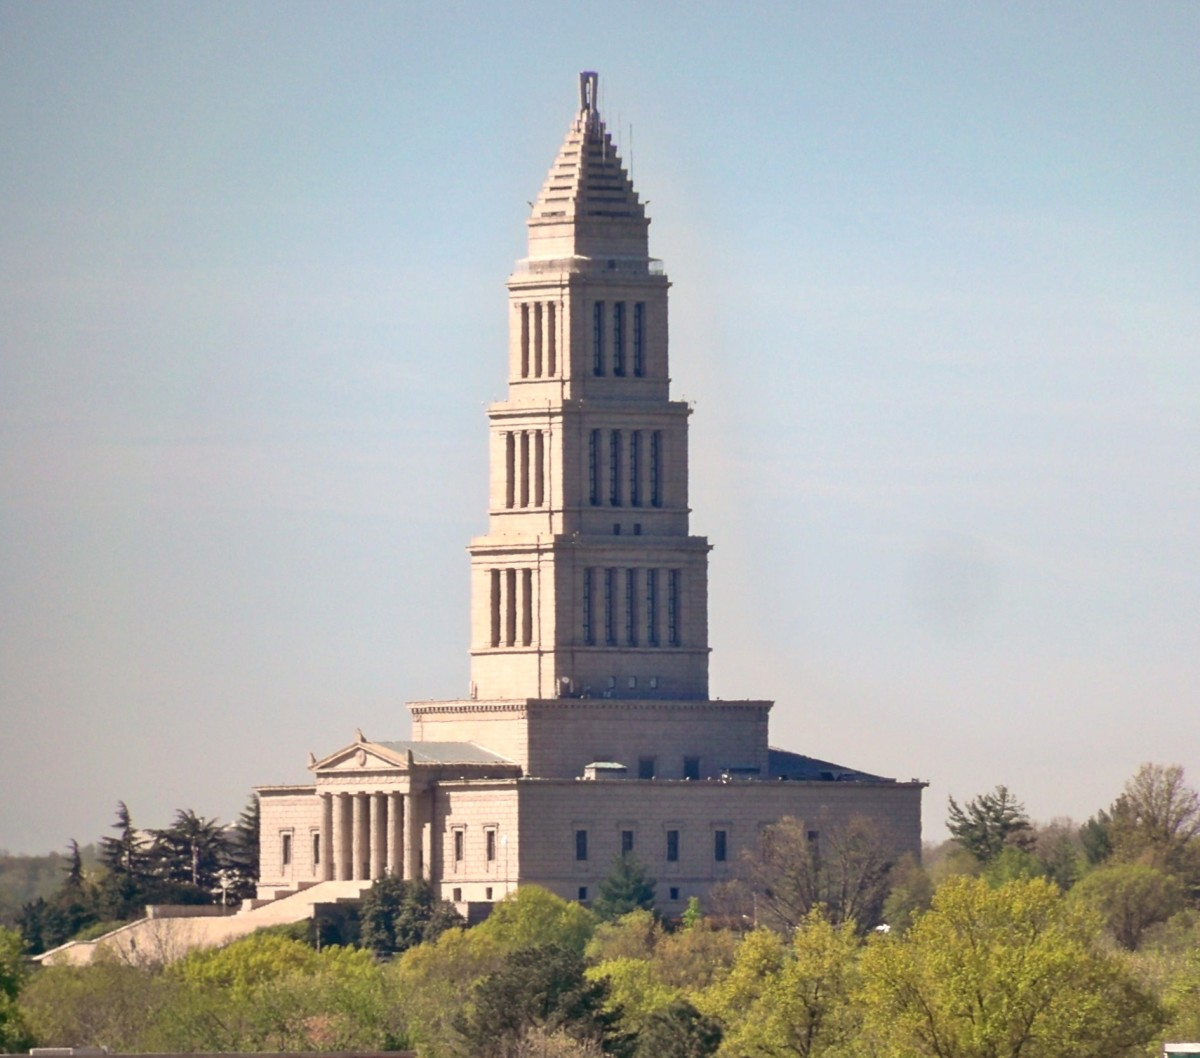 The George Washington Masonic Temple (from Monroe Avenue Bridge, Route 1)